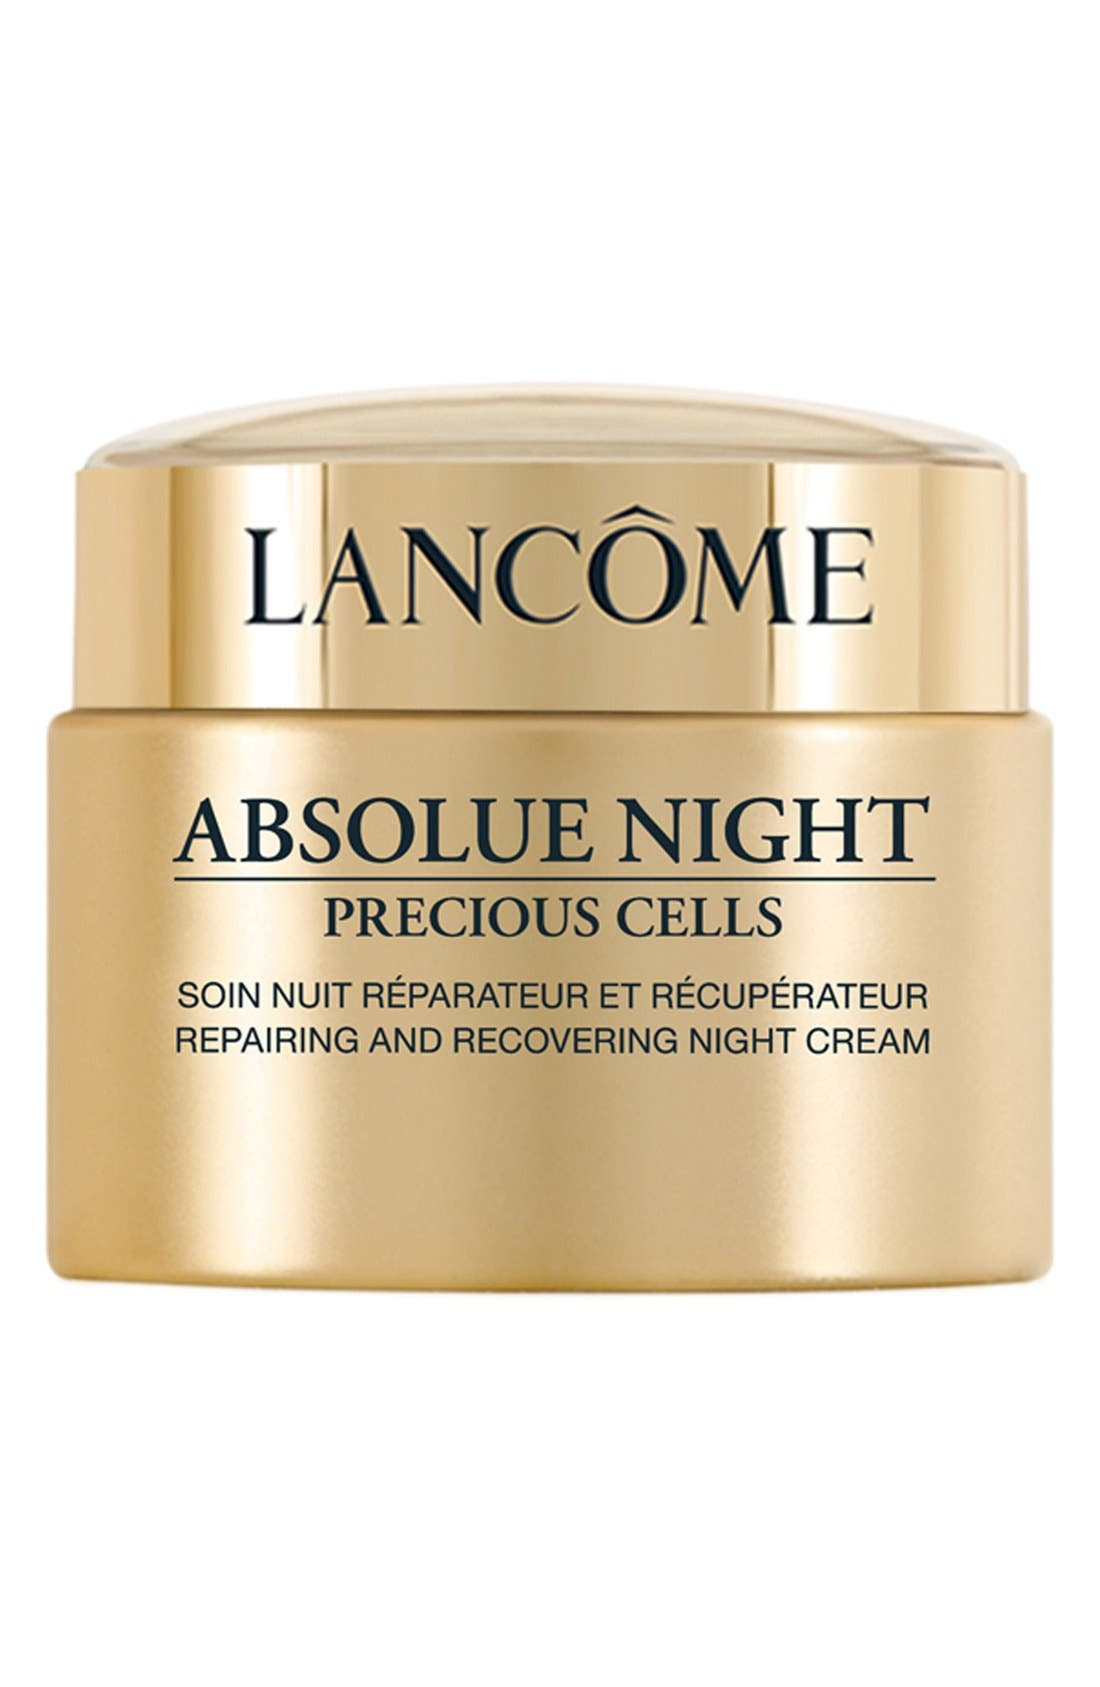 Absolue Precious Cells Repairing and Recovering Night Moisturizer Cream,                             Main thumbnail 1, color,                             NO COLOR